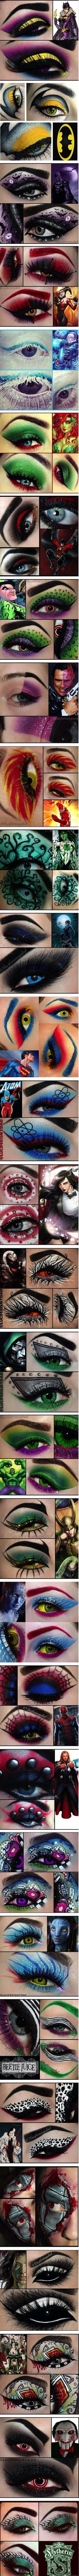 eye makeup-in superhero/villain style. Epic.